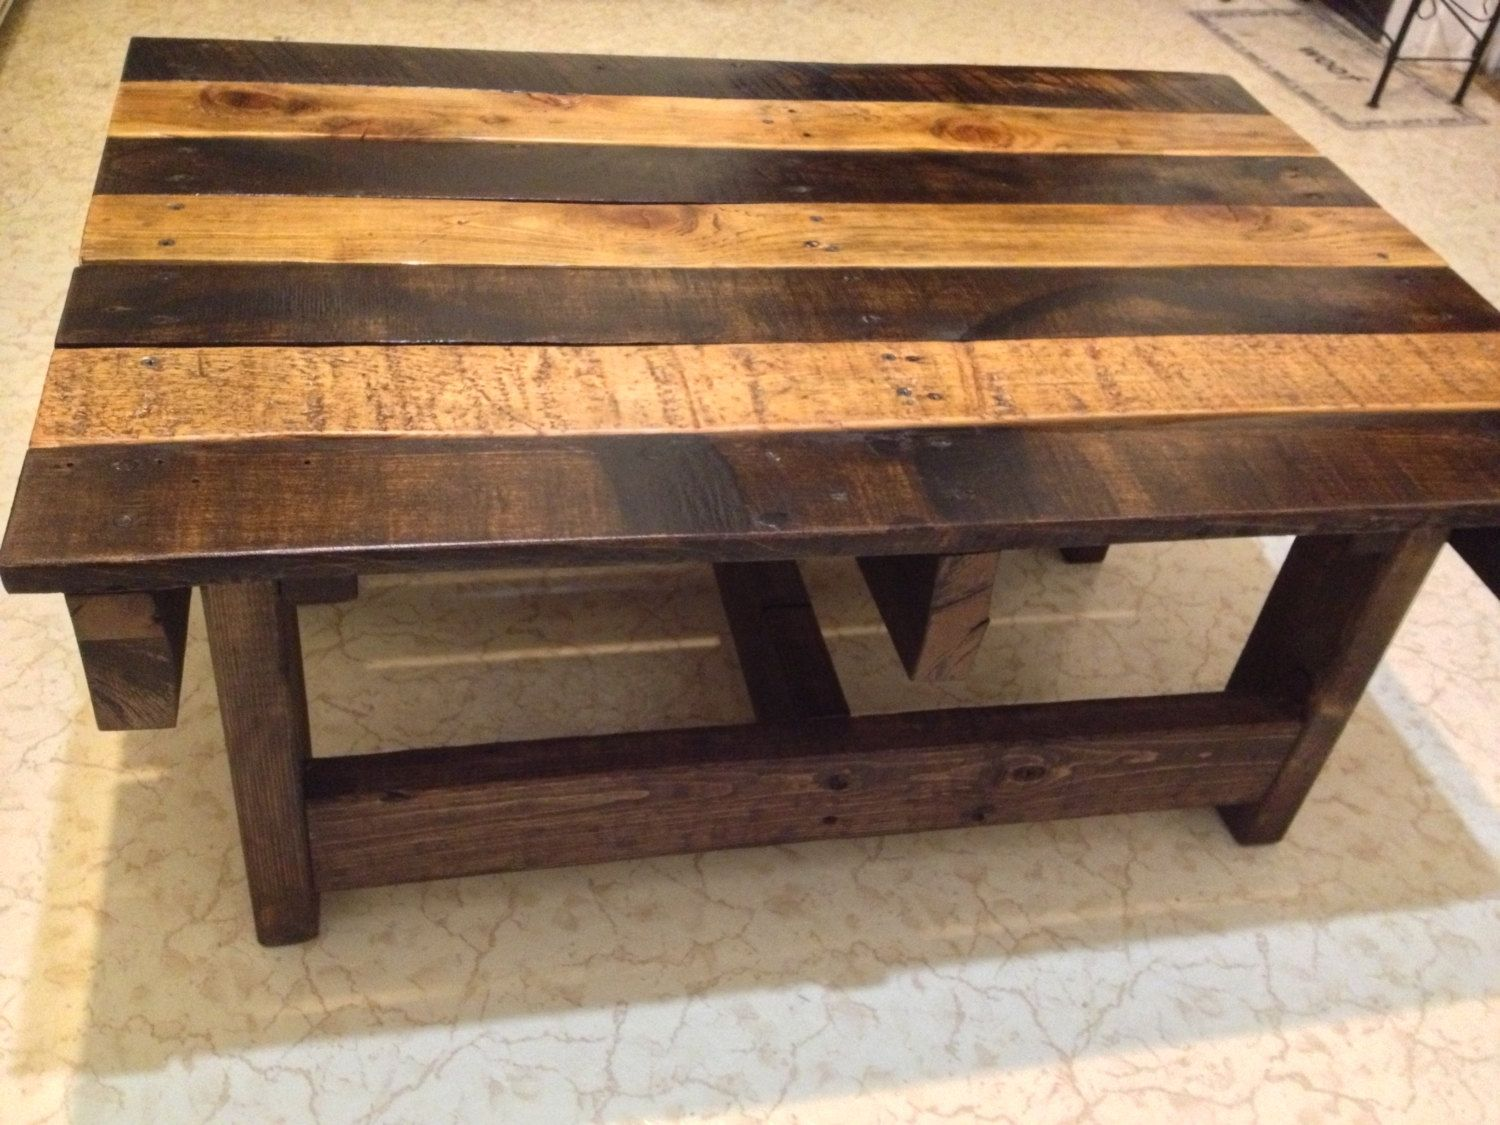 Custom Made Handmade Reclaimed Rustic Pallet Wood Coffee Table - Hand Crafted Handmade Reclaimed Rustic Pallet Wood Coffee Table By